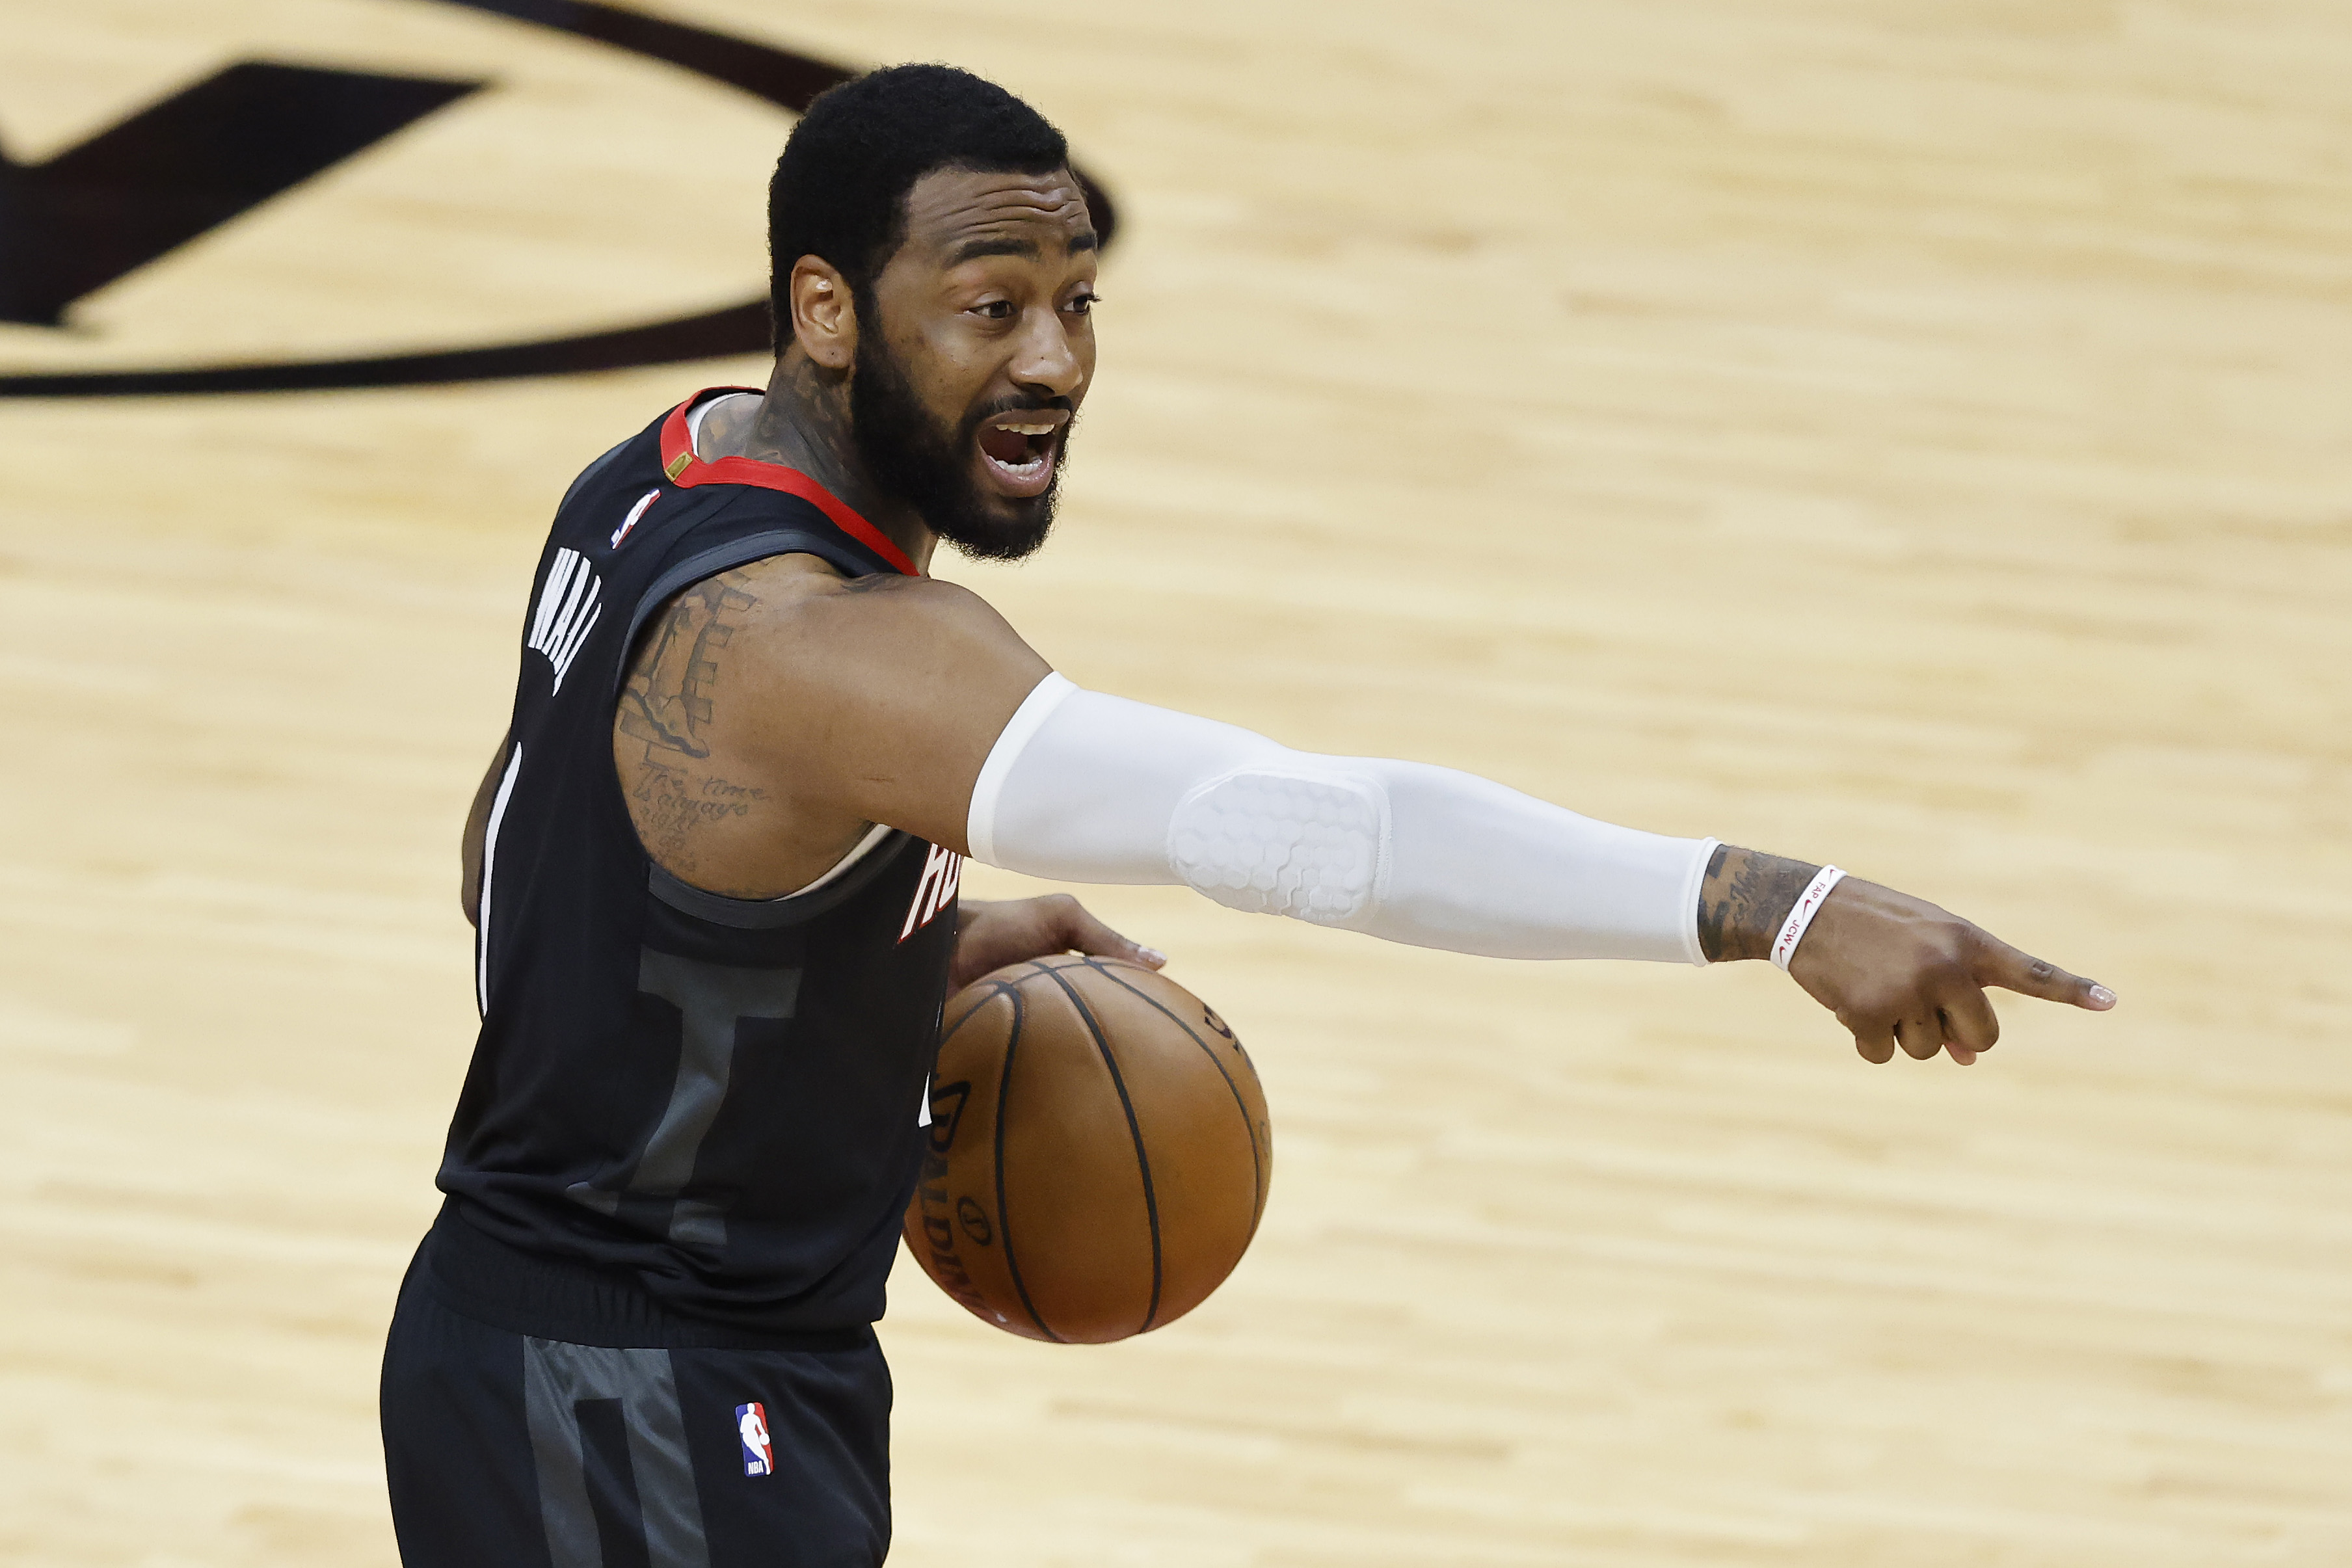 John Wall of the Houston Rockets reacts against the Miami Heat during the second quarter at American Airlines Arena on April 19, 2021 in Miami, Florida.